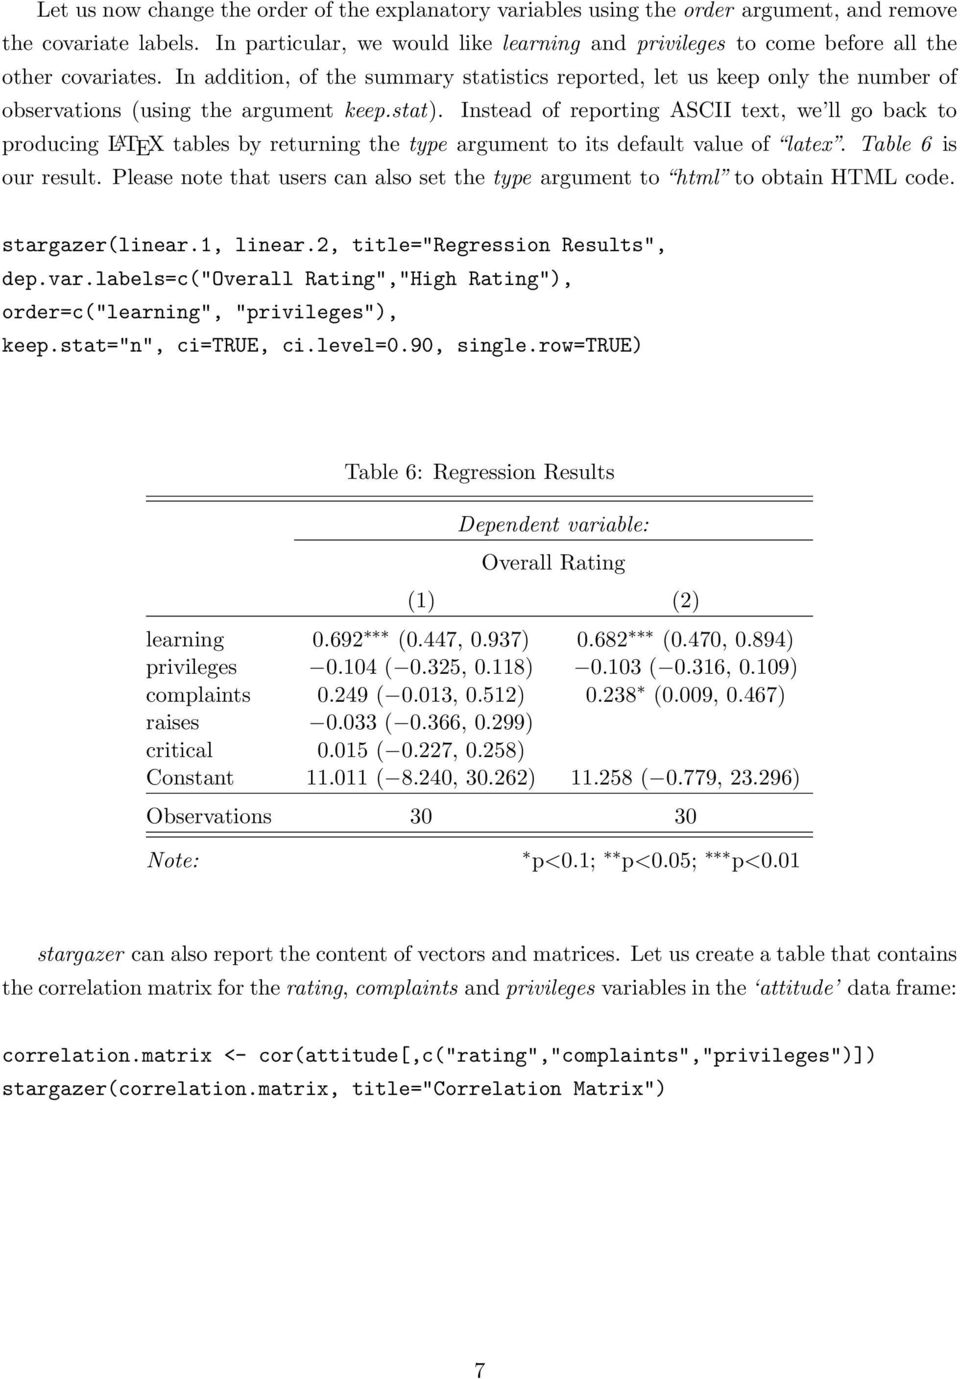 stargazer: beautiful L A TEX, HTML and ASCII tables from R